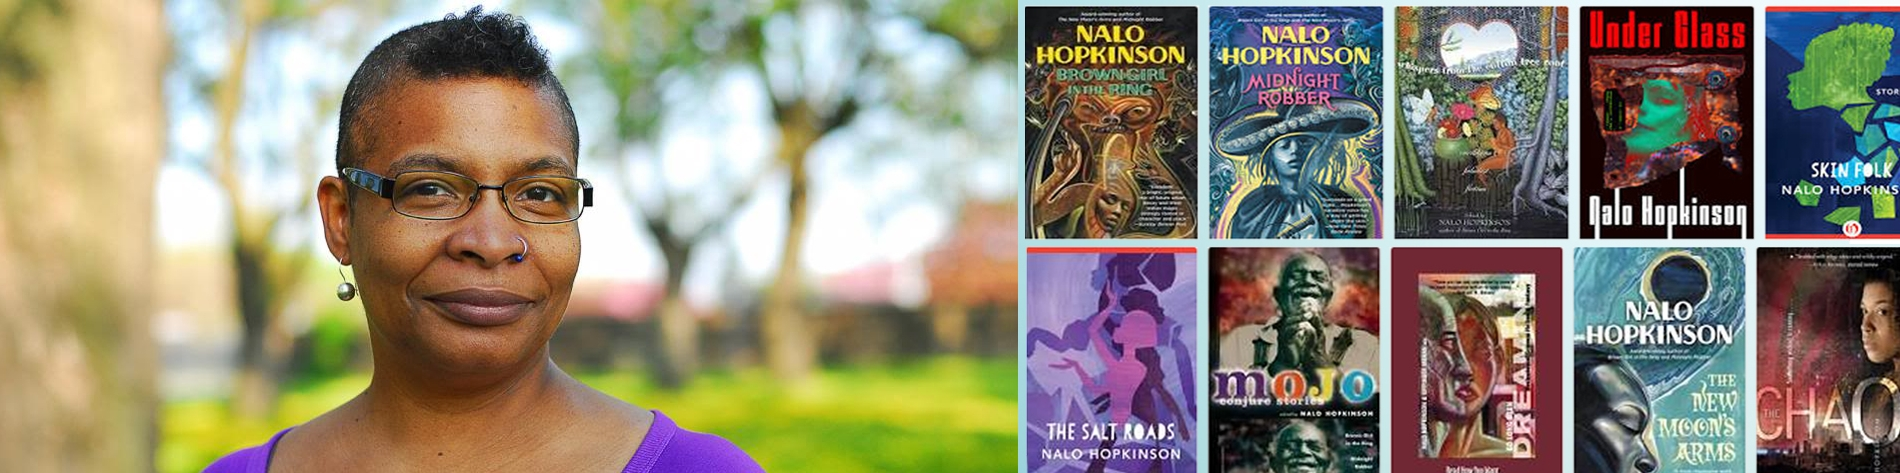 Nalo Hopkinson and images of her many books